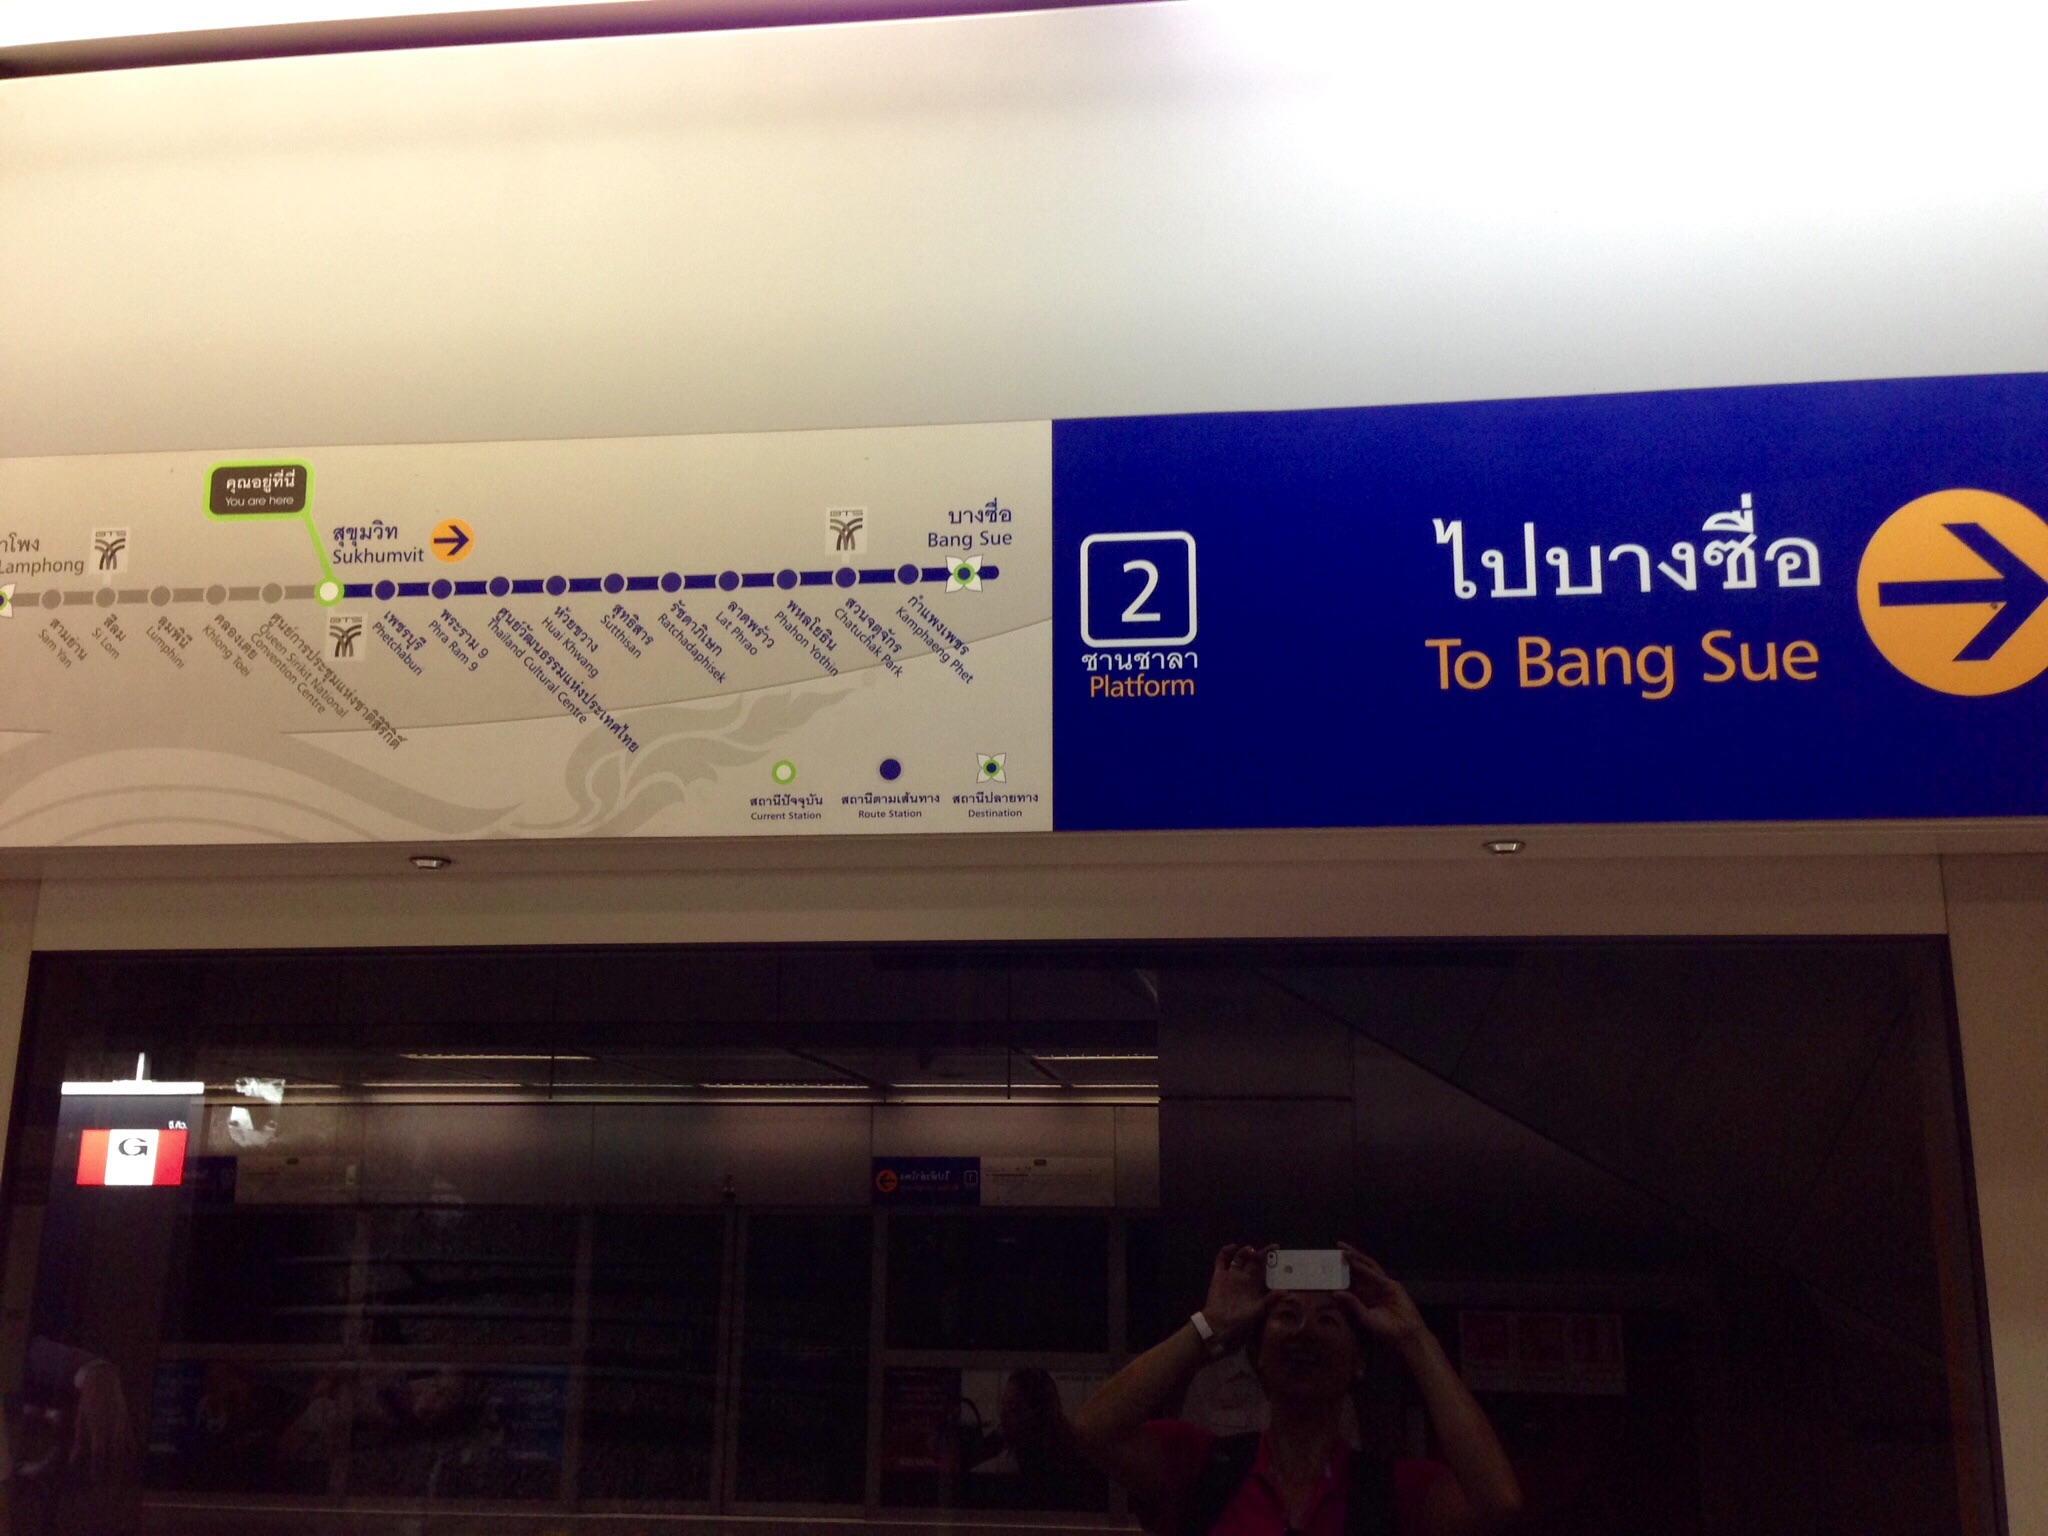 Going to Bang Sue.